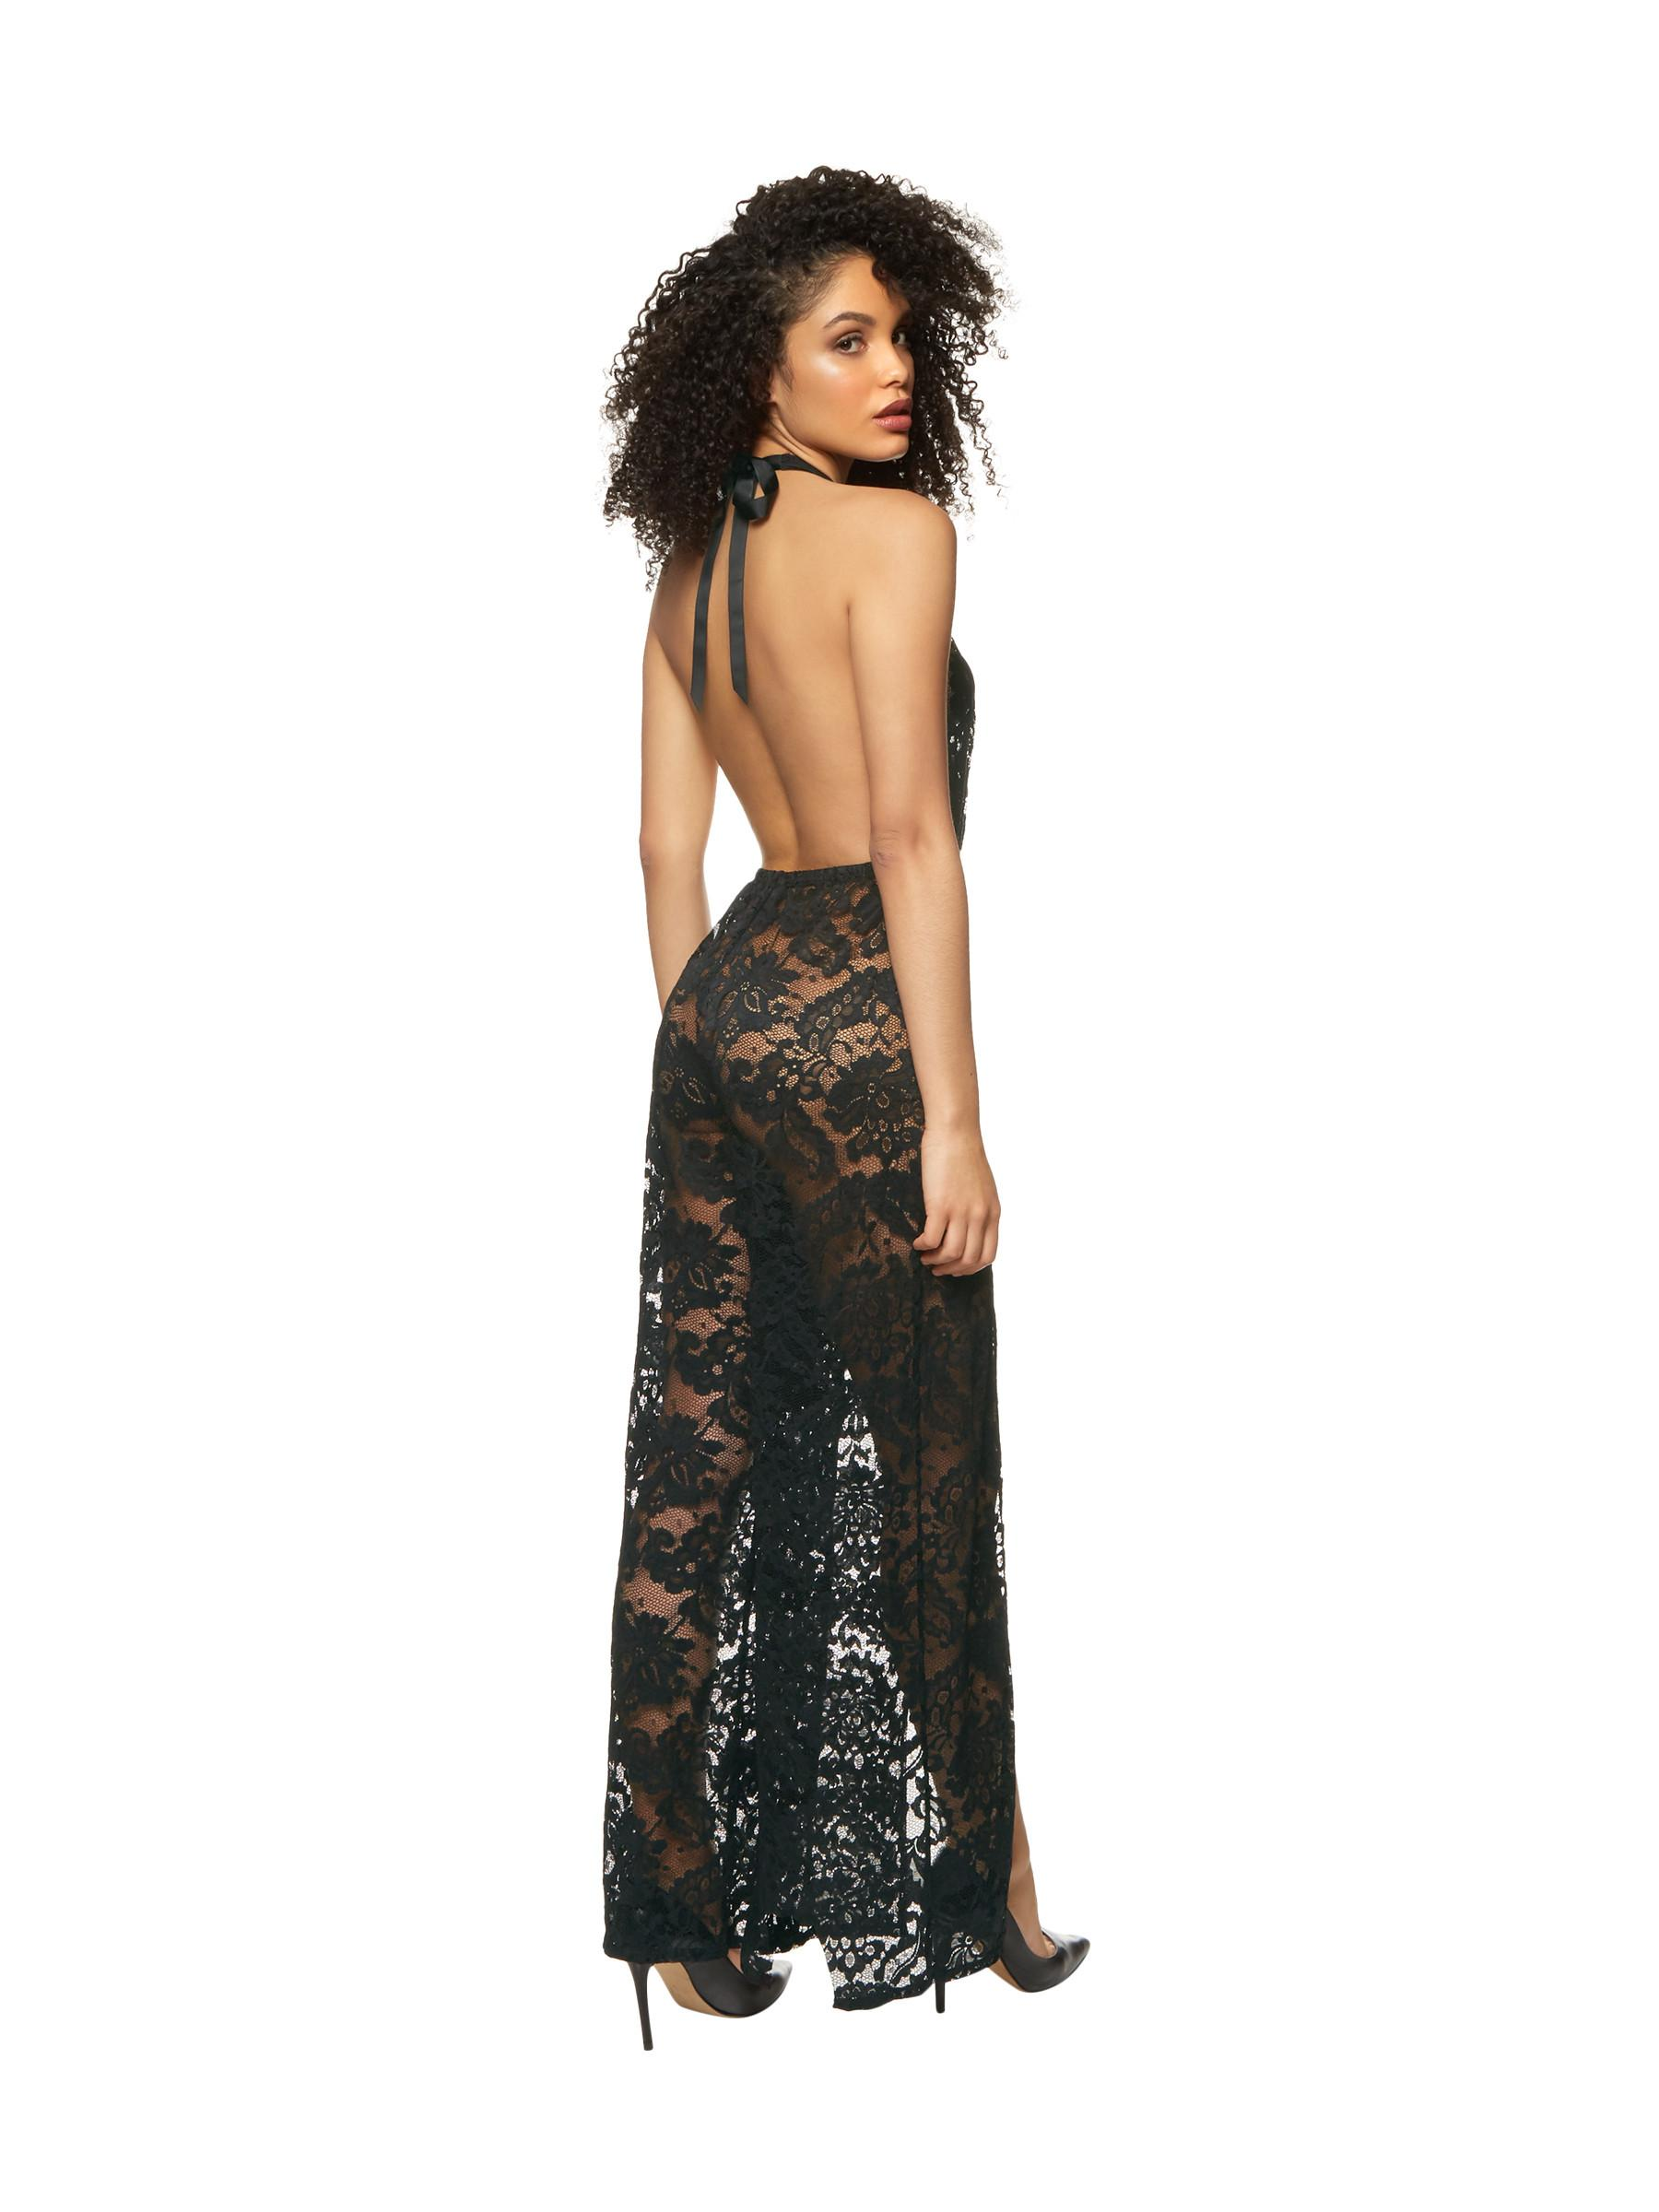 Ann Summers Womens Cabana Jumpsuit Deep Plunge Neck Y Cover Up Beachwear